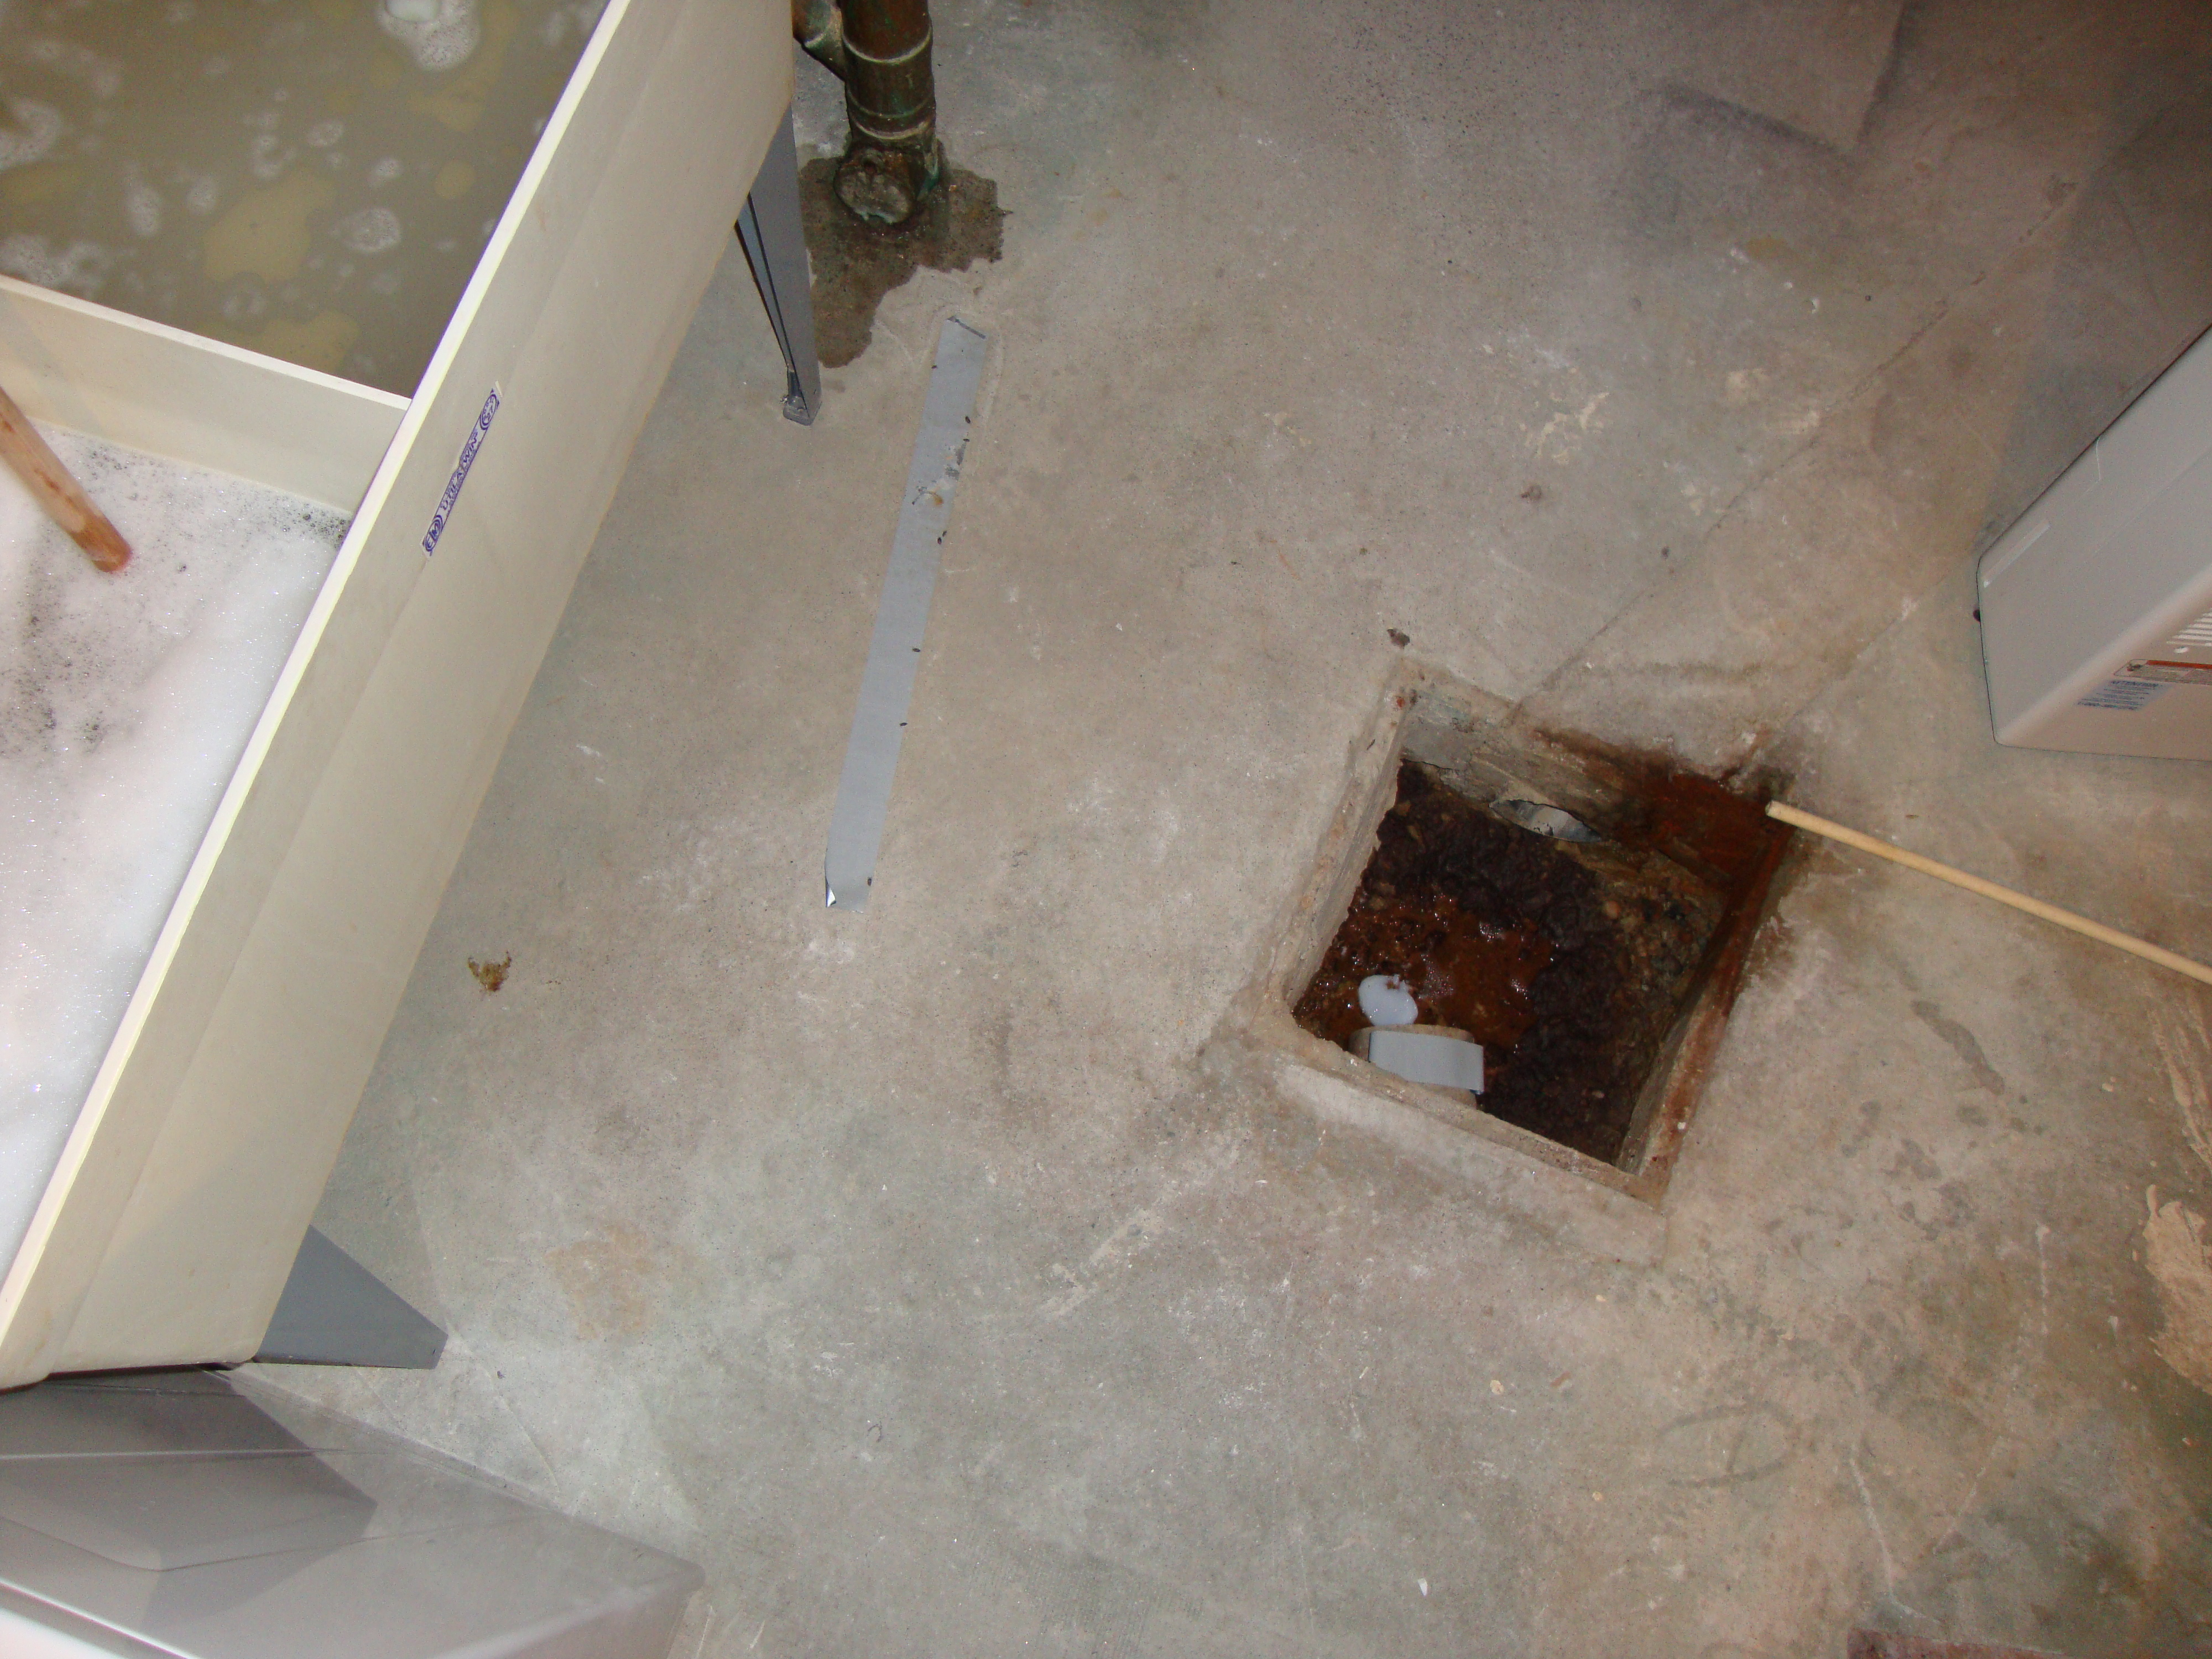 Red 39 s blog november 2009 for Sewer backup smell in house